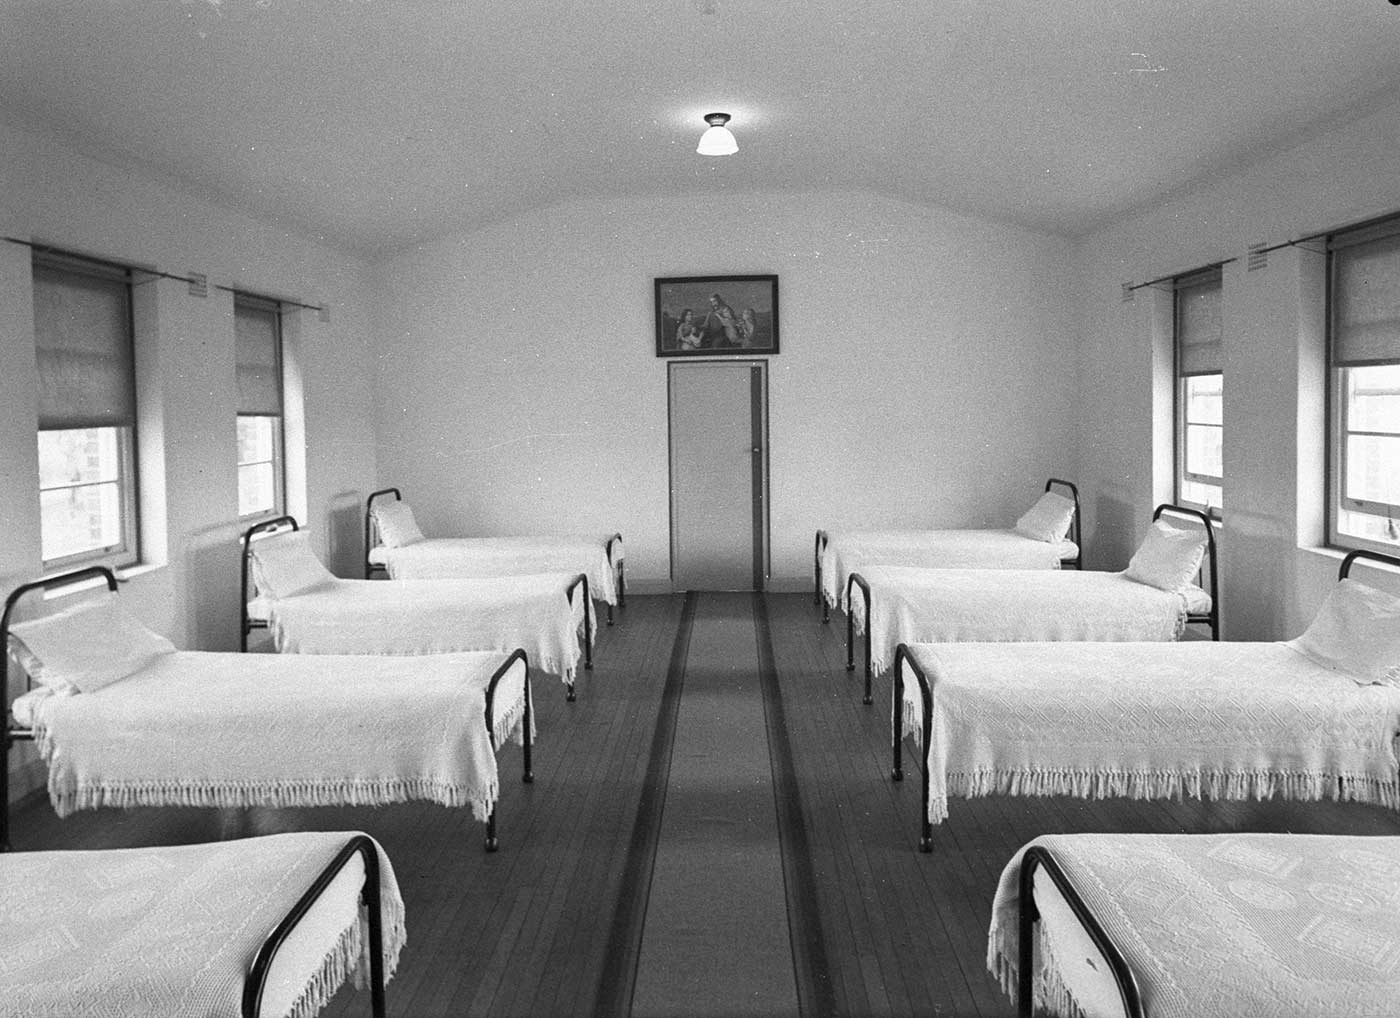 Black and white image showing two rows of single beds on either side of a room. The room has floorboards and a central runner leading to a door at the far end. - click to view larger image